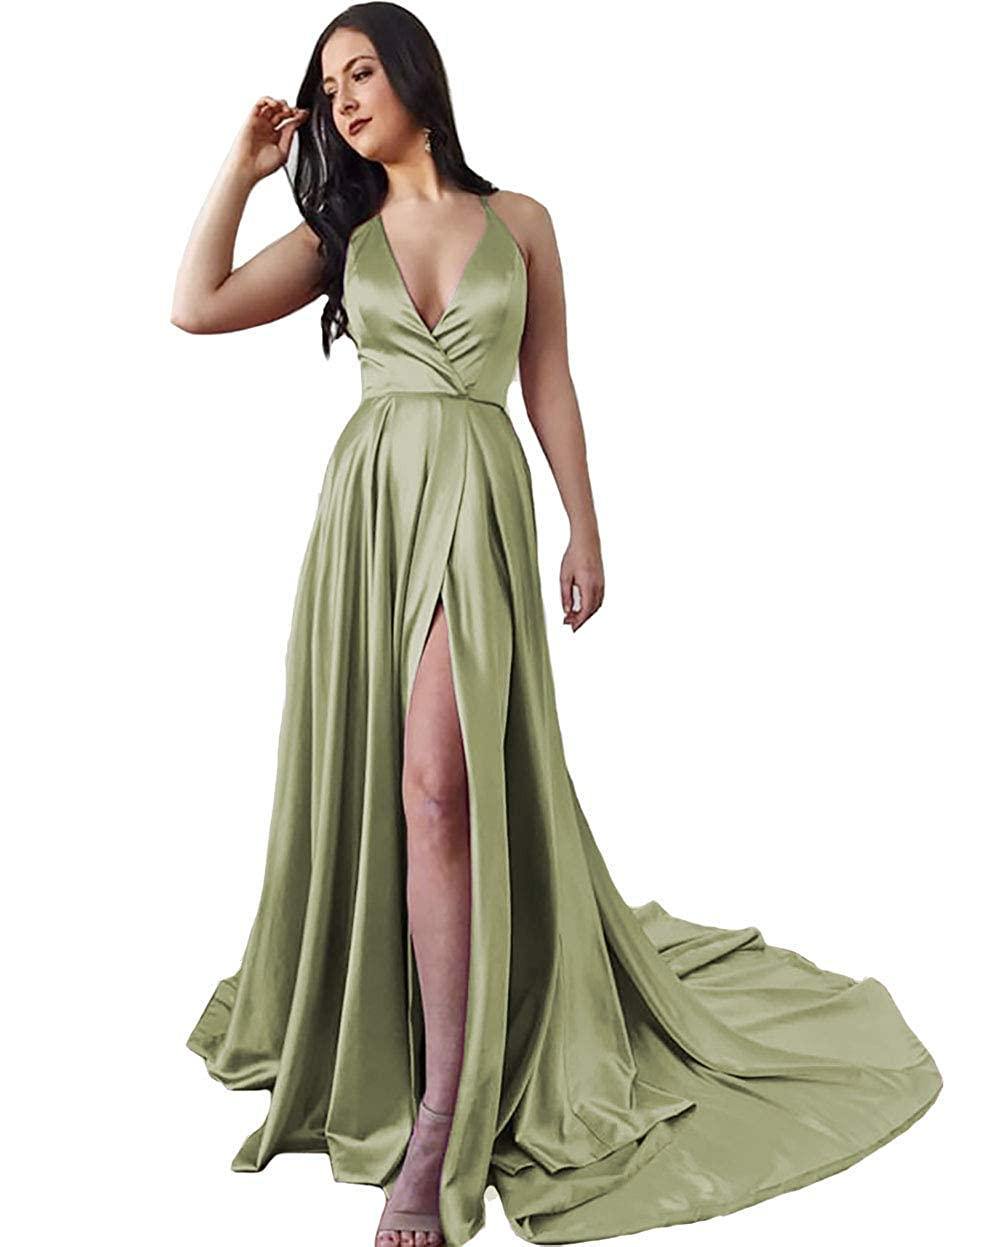 Hunter Green IVYPRECIOUS Women's Long Prom Dresses V Neck A Line with Side Split Evening Gowns